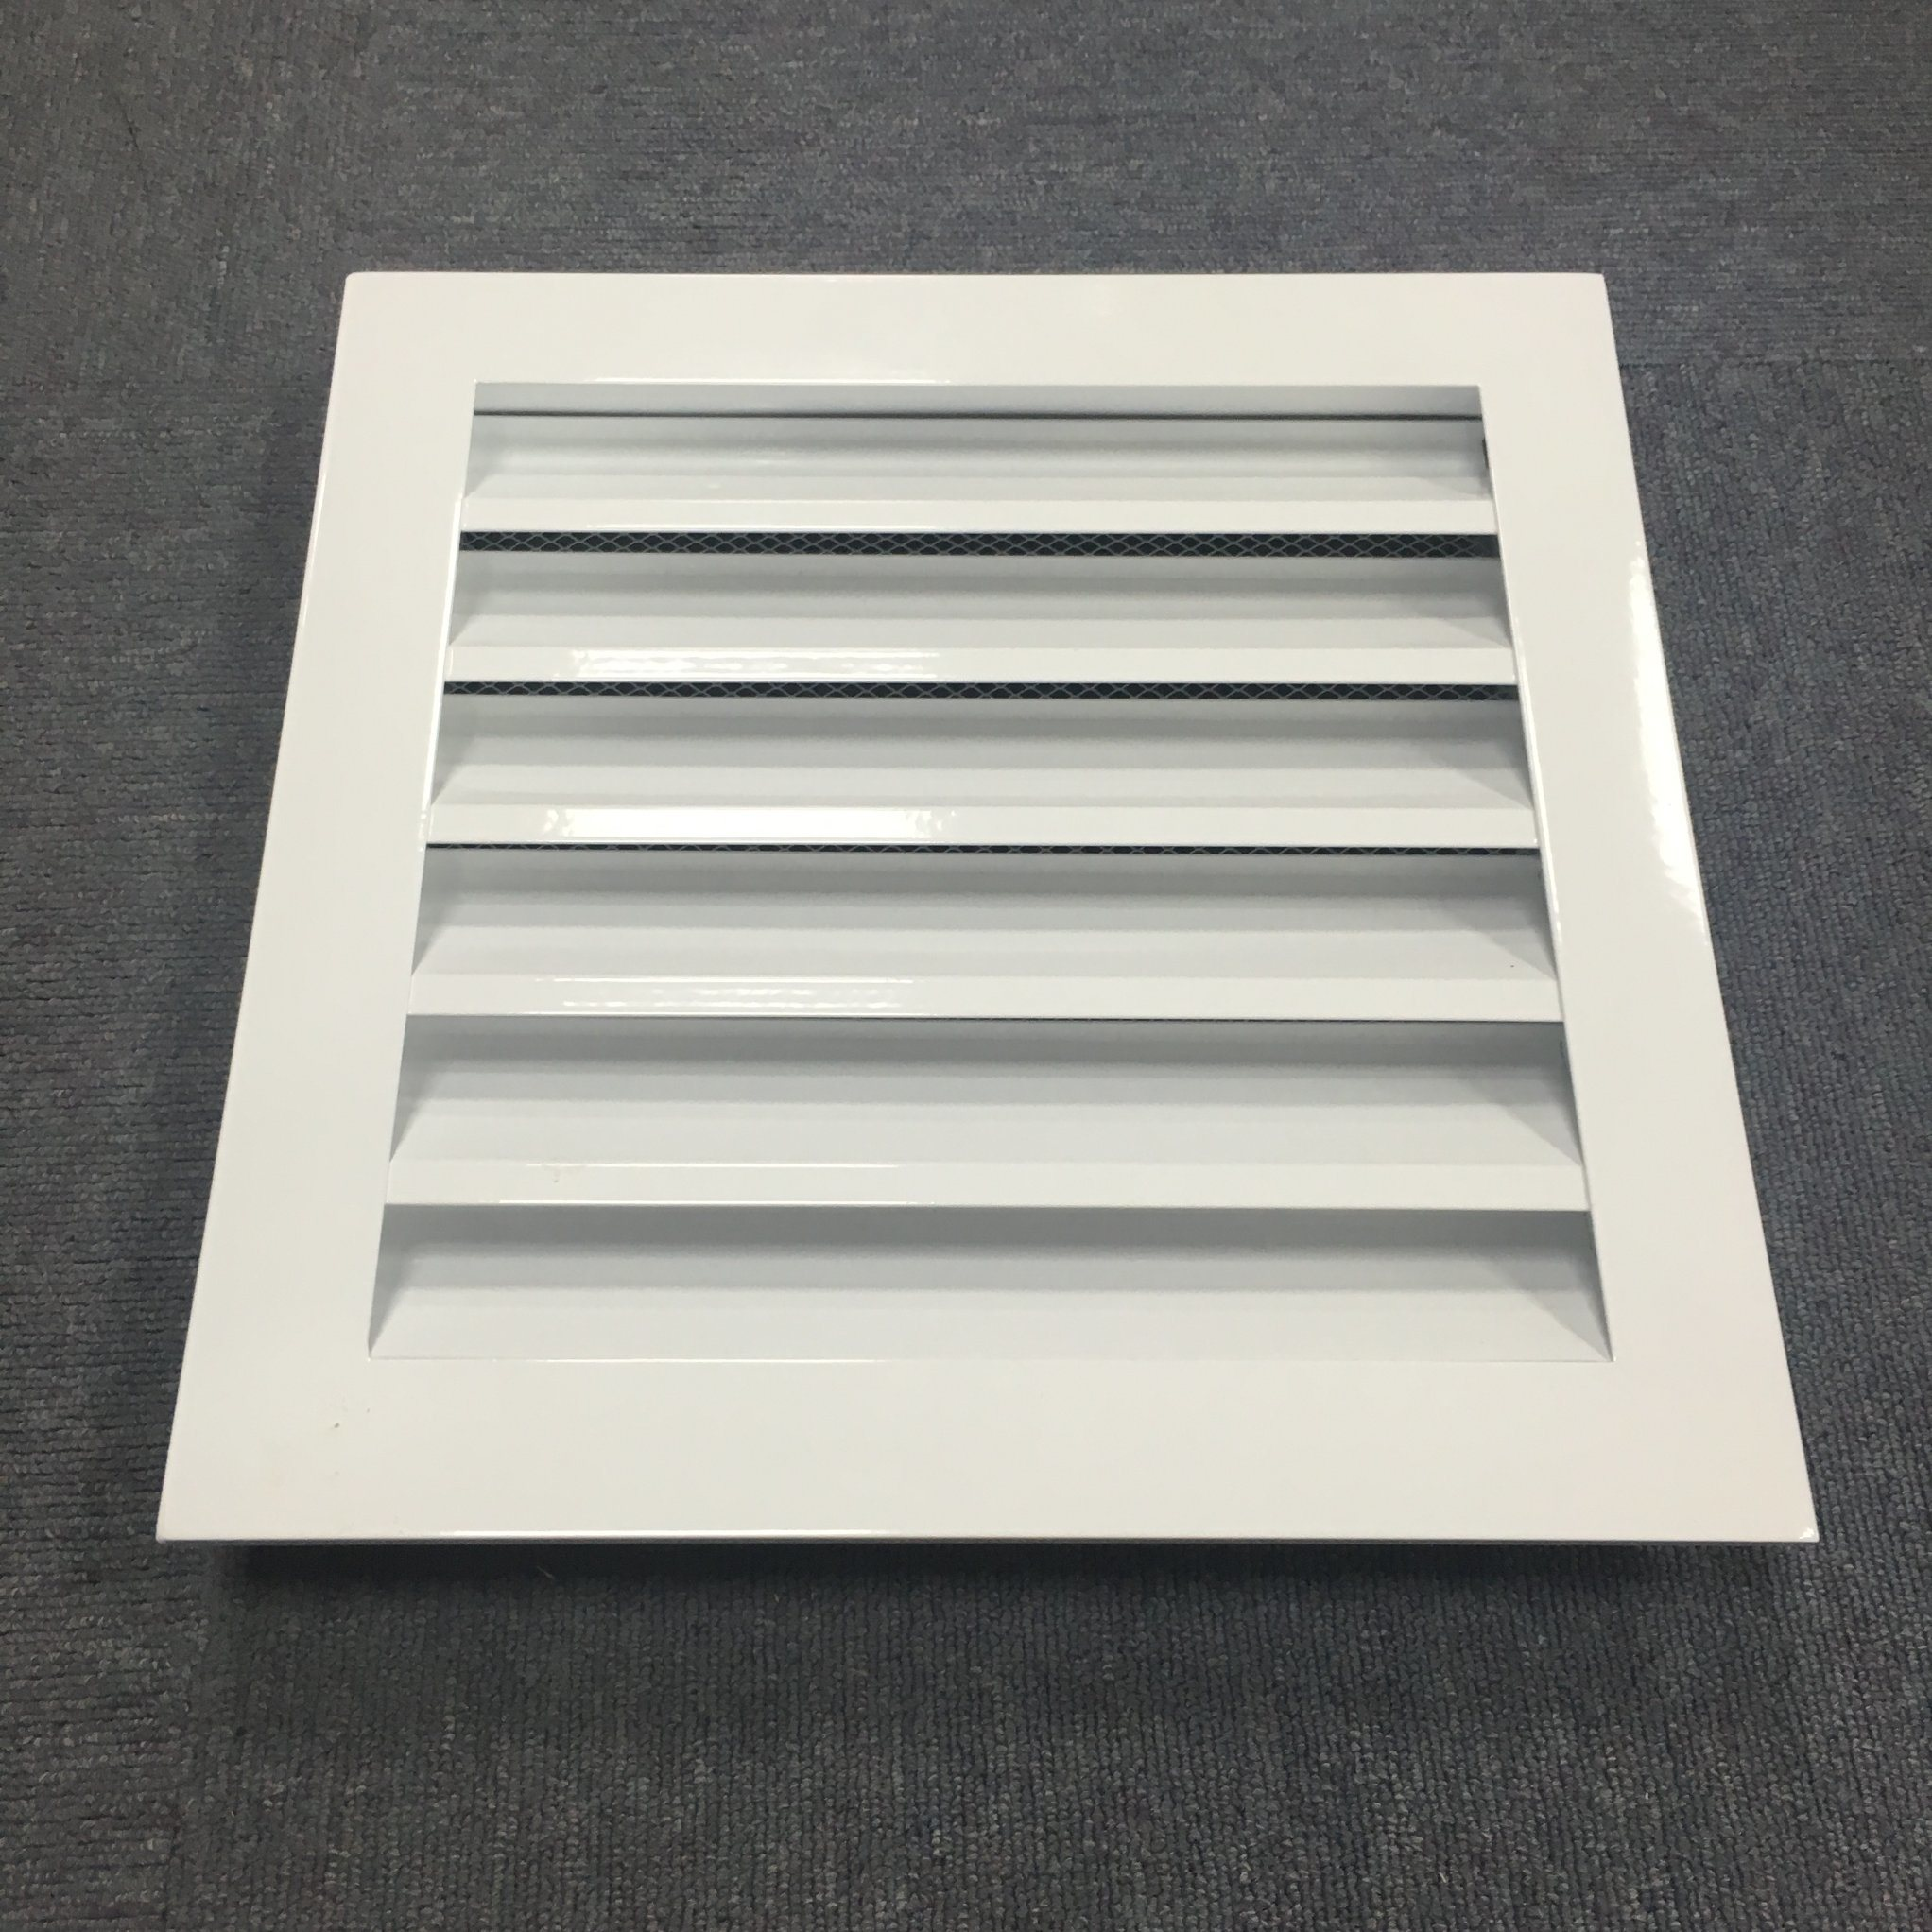 [Hot Item] Aircon Linear Diffuser Stable Structure Aluminum Weather Louver